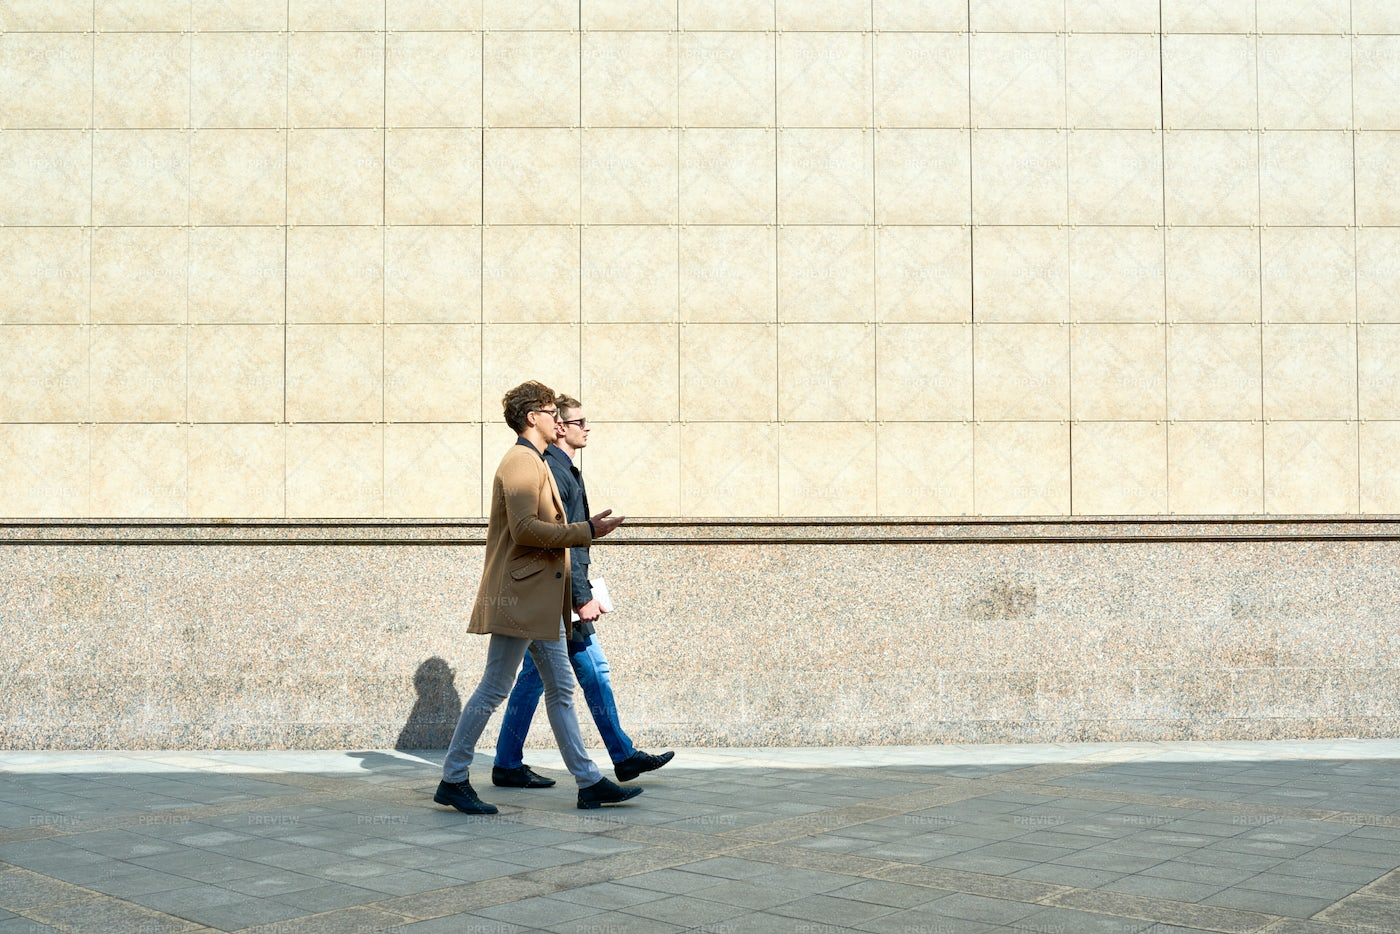 Modern Businessmen Walking In City: Stock Photos